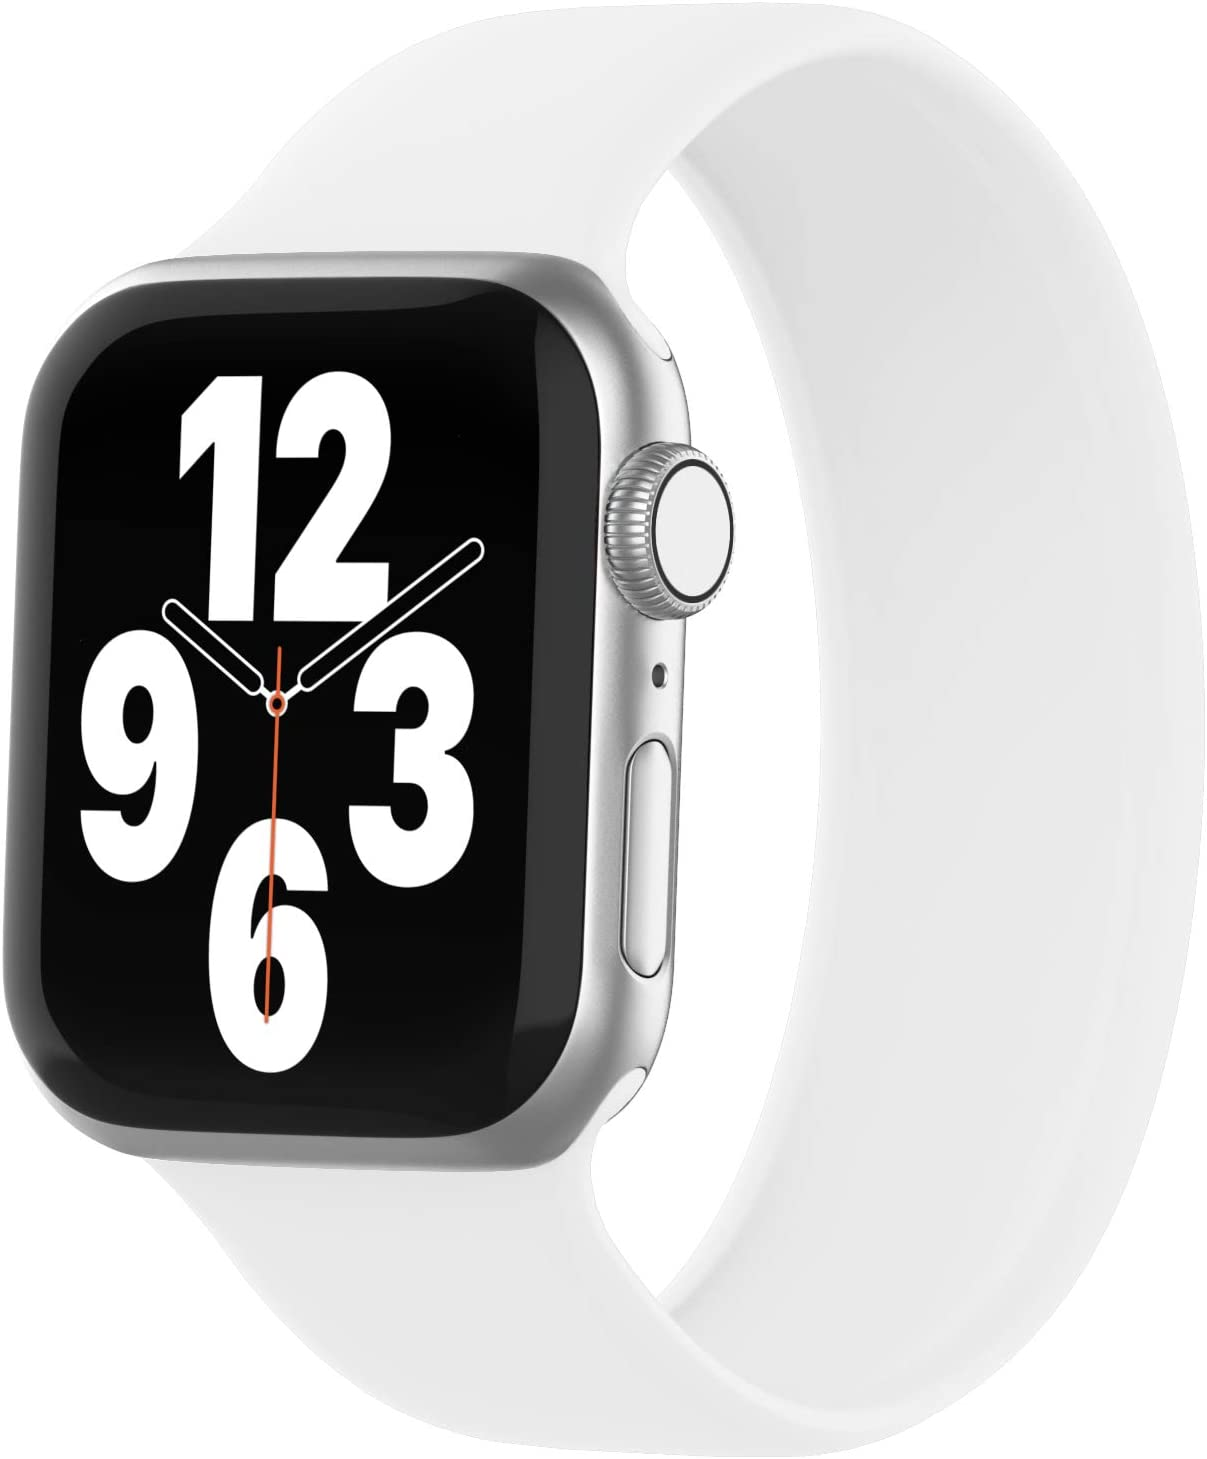 WASPO Solo Loop Band Compatible with Apple Watch Band 38mm 40mm 42mm 44mm, Sport Elastic Silicone Bands with No Clasps or Buckles Compatible for iWatch Series 6/SE/5/4/3/2/1(38mm/40mm-S, White)